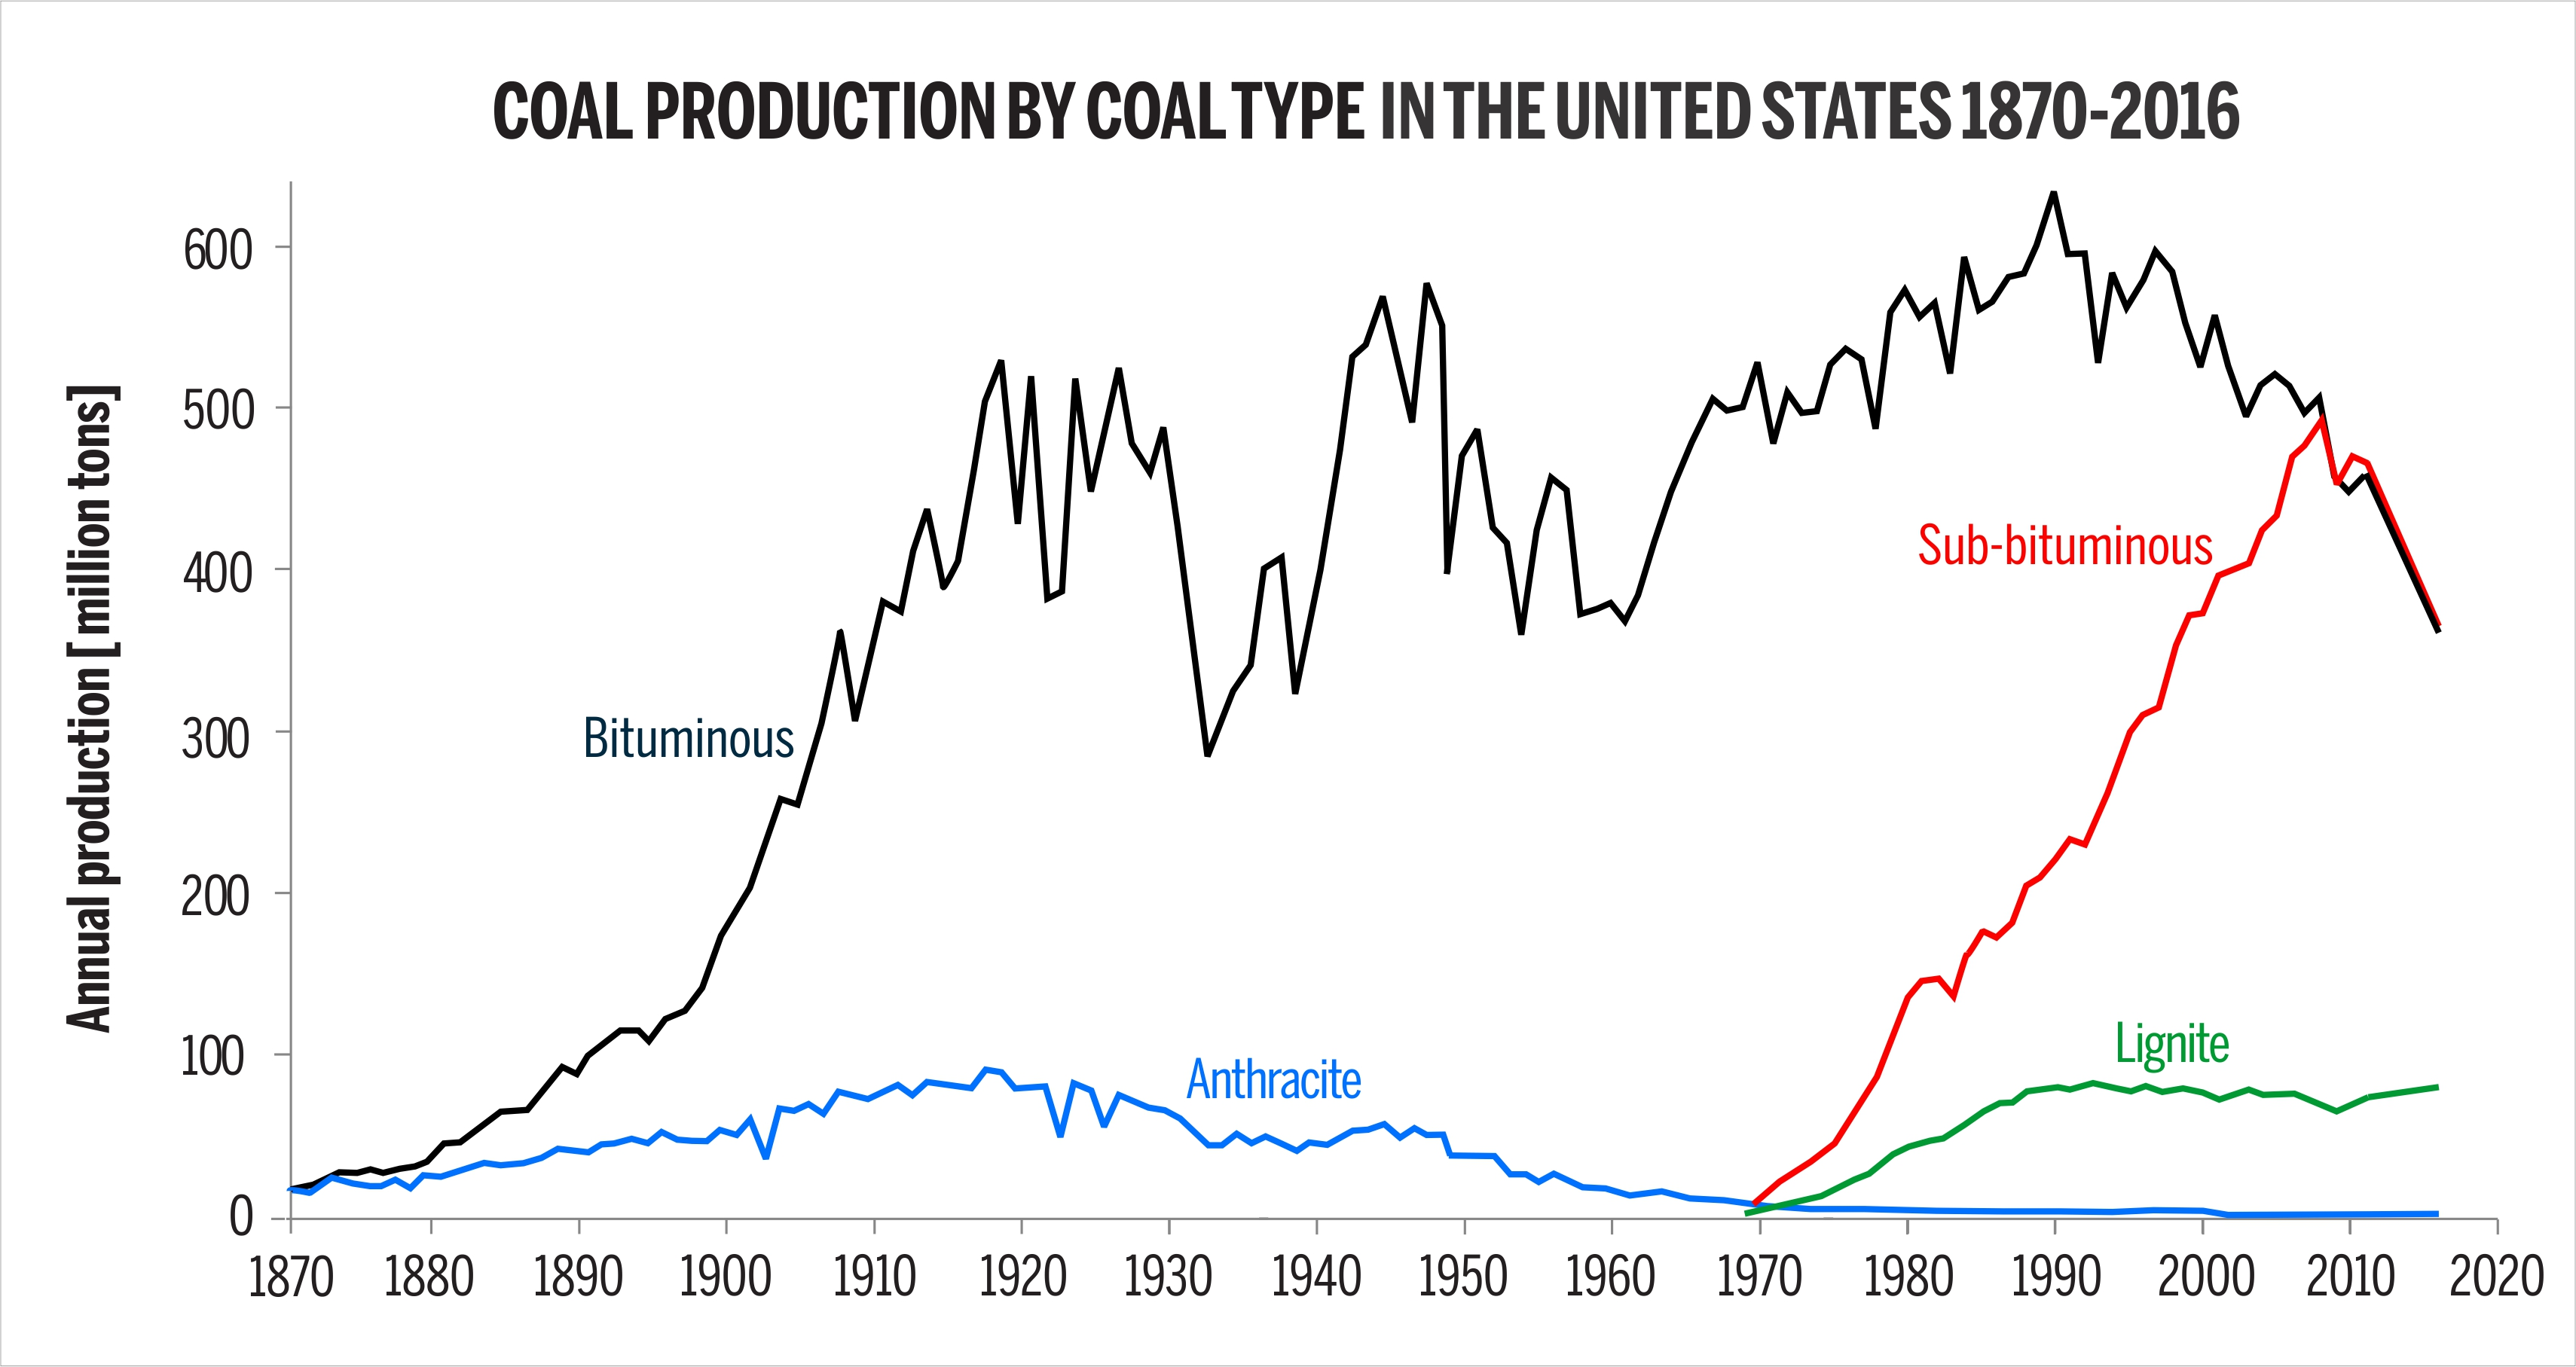 Coal production by coal type in the United States 1870-2016